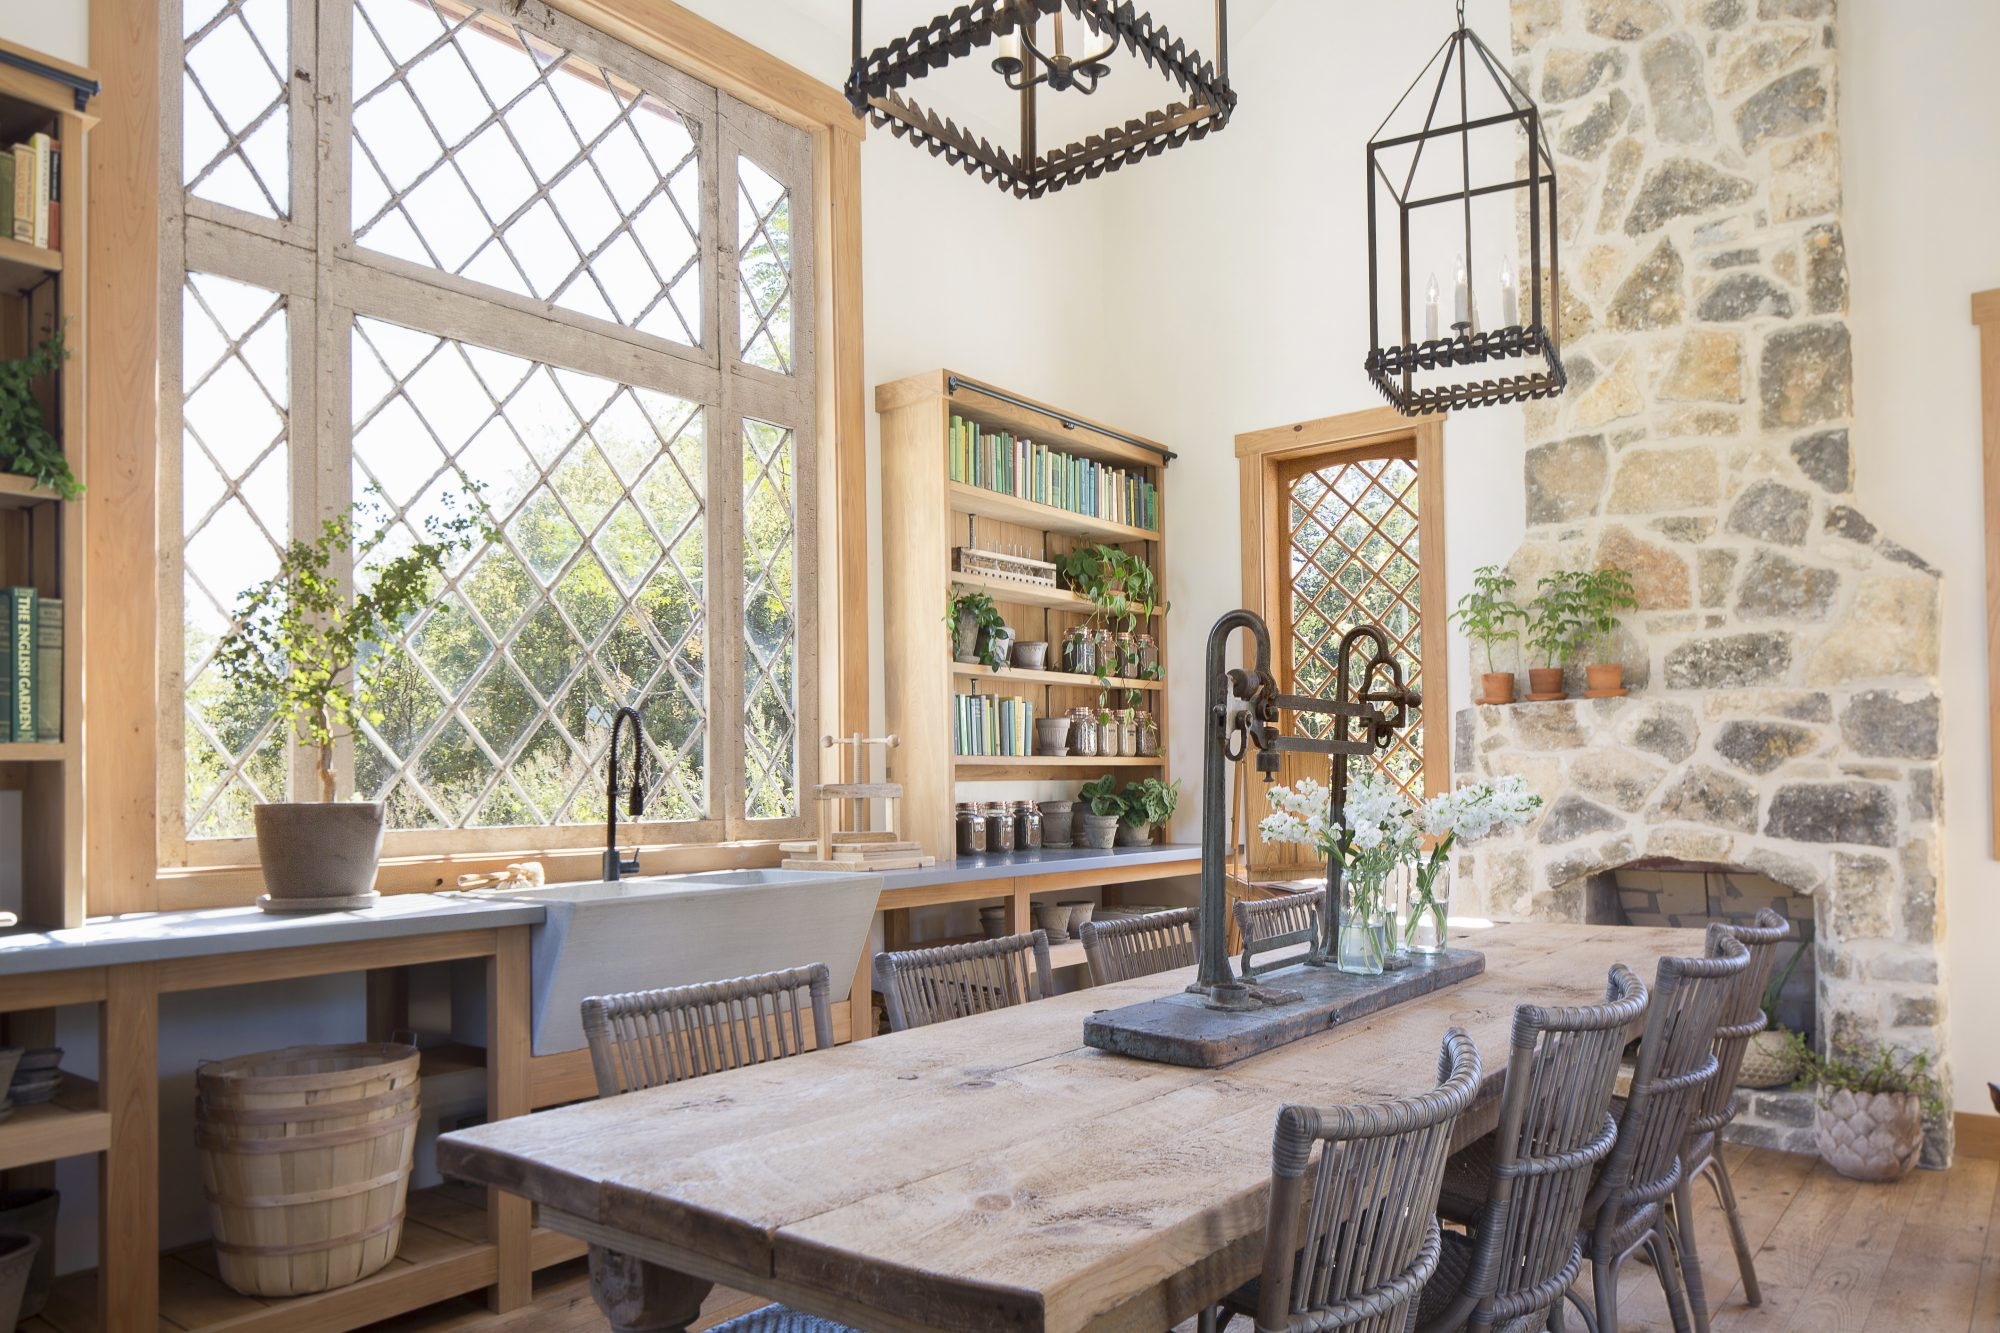 The interior of the garden cottage, as seen on Fixer Upper. (After)